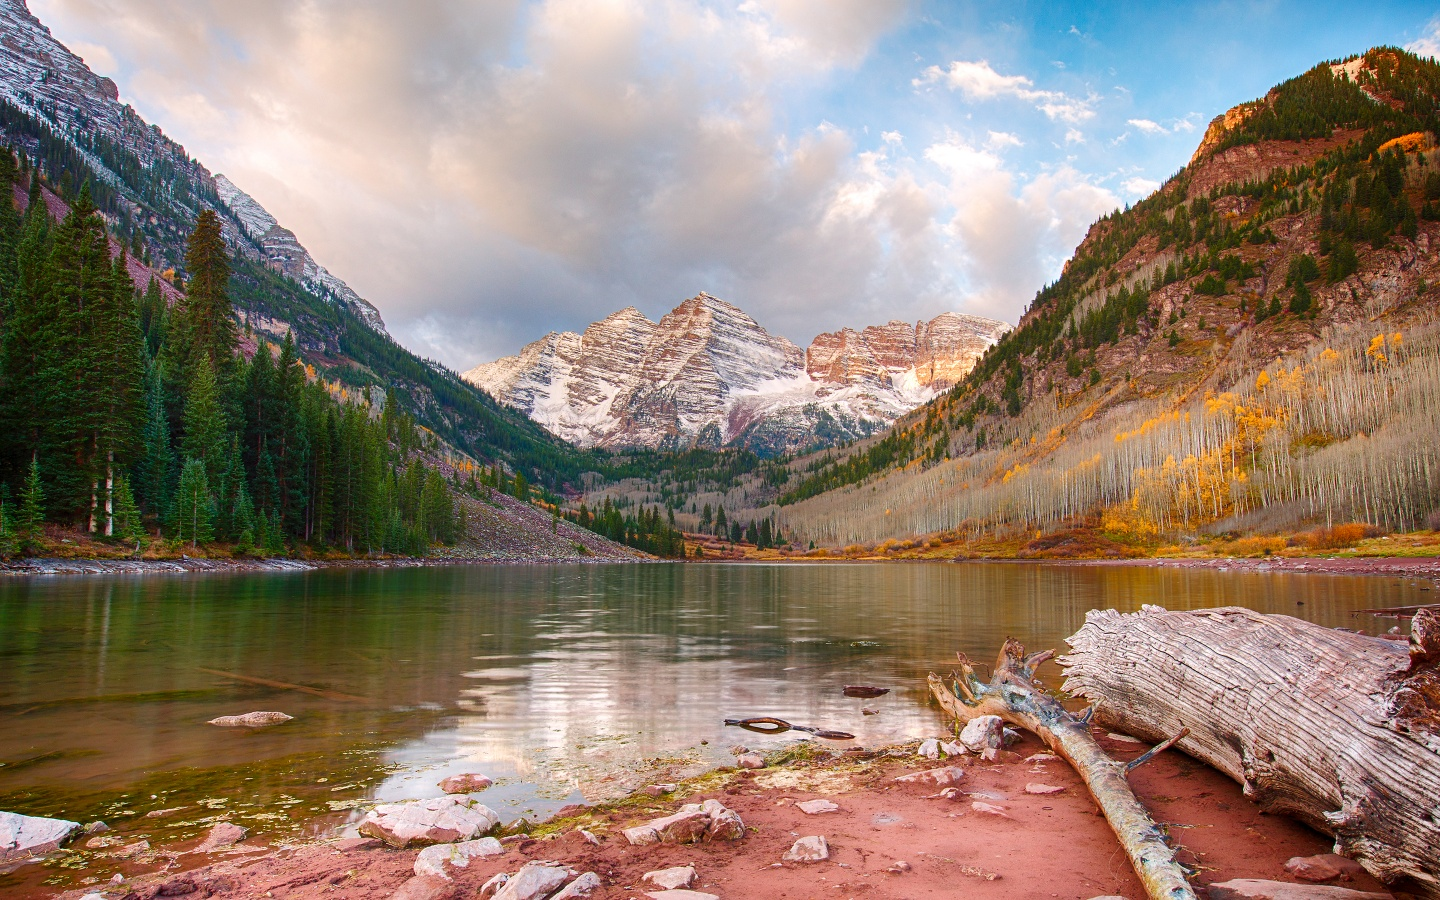 Maroon Lake Aspen Colorado Wallpapers HD Wallpapers 1440x900